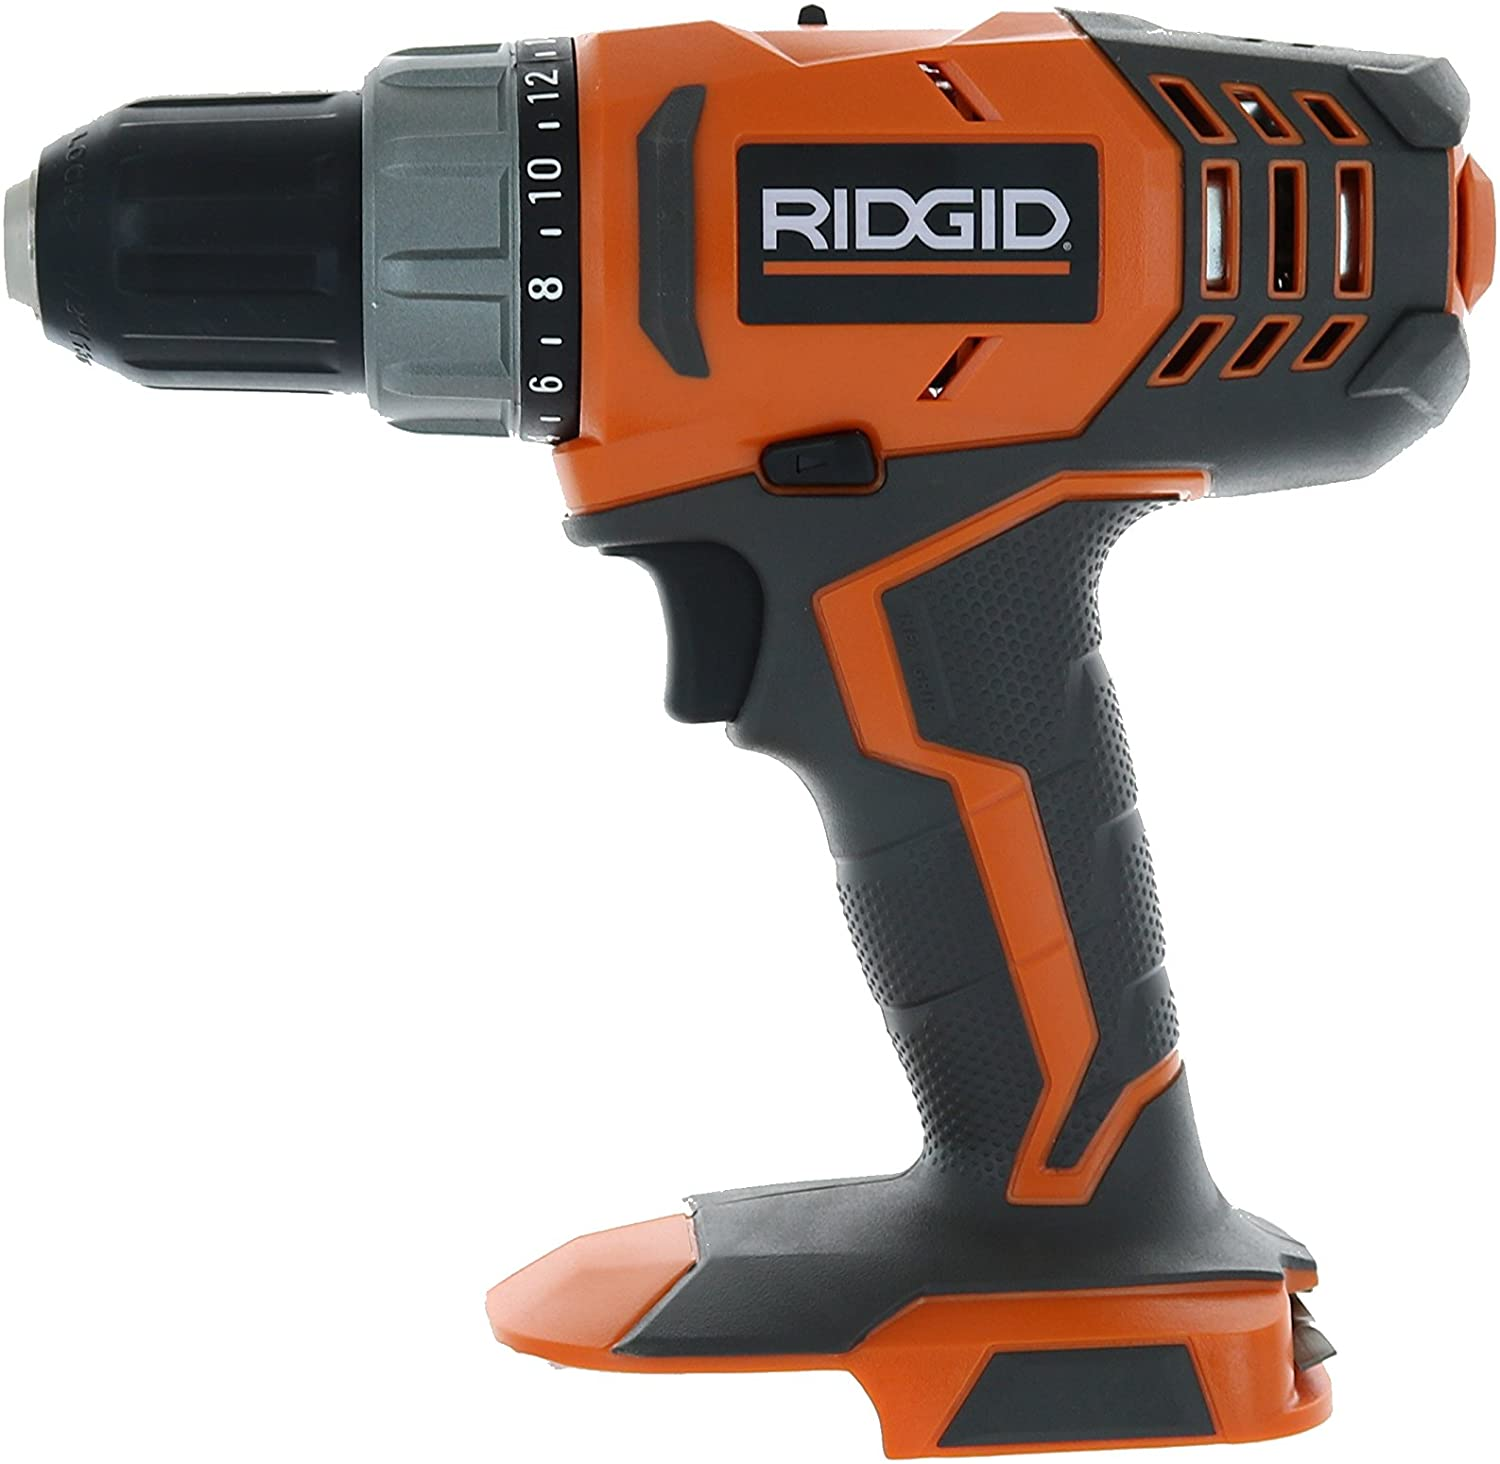 RIDGID R860052 18-Volt Lithium-Ion 1 2 in. Cordless Compact Drill Driver Bare Tool Only – Battery and Charger Not Included